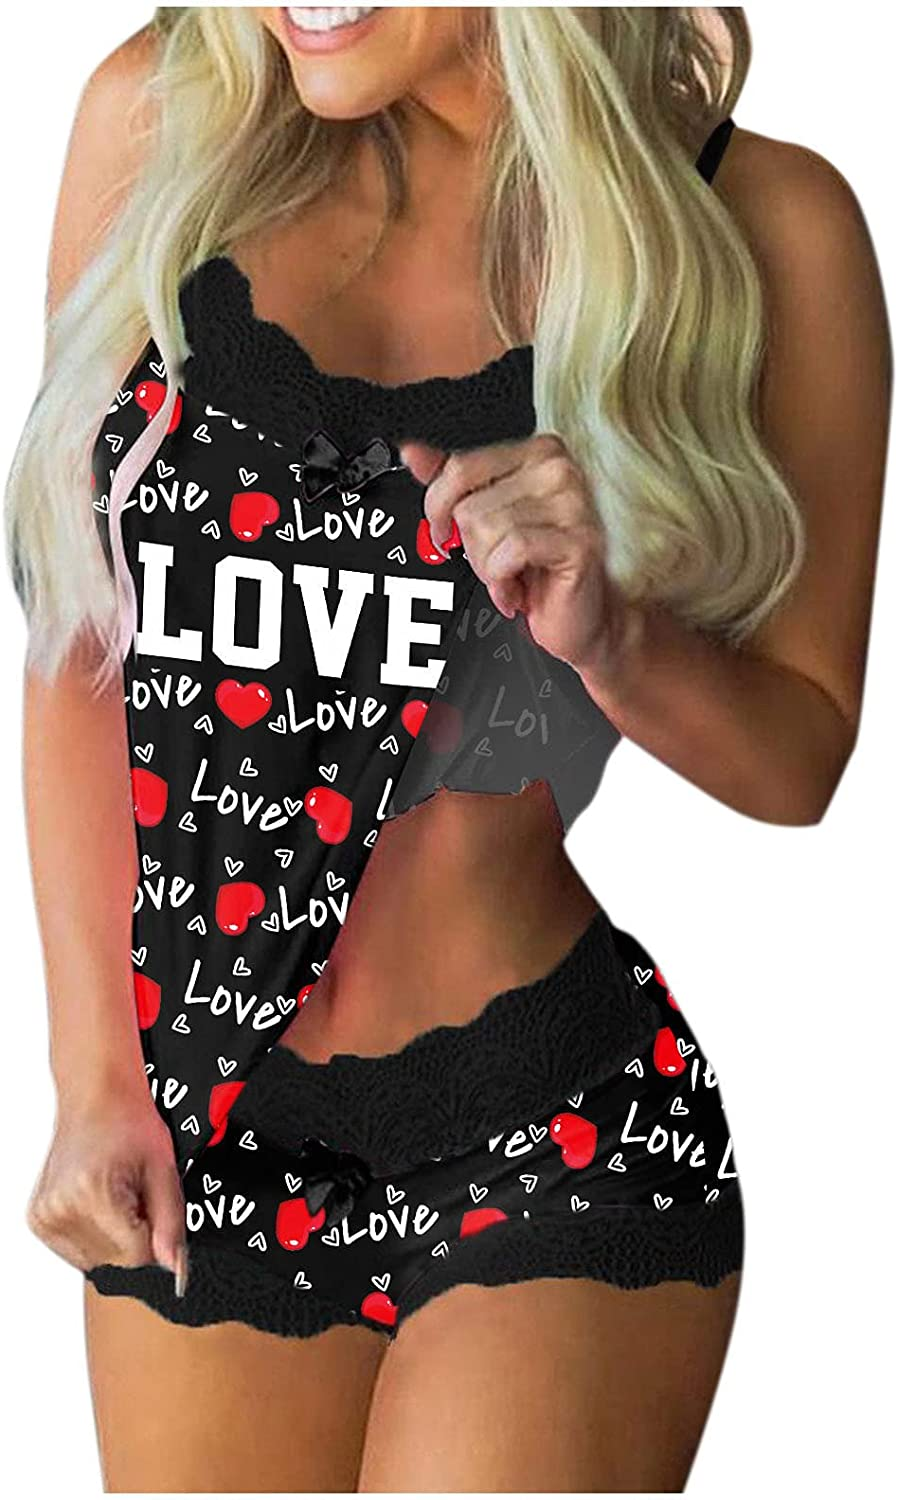 AODONG Sleepwear for Women Halloween Printed Lingerie Set Babydolls Sexy Pajamas Set Lace Chemises Outfits